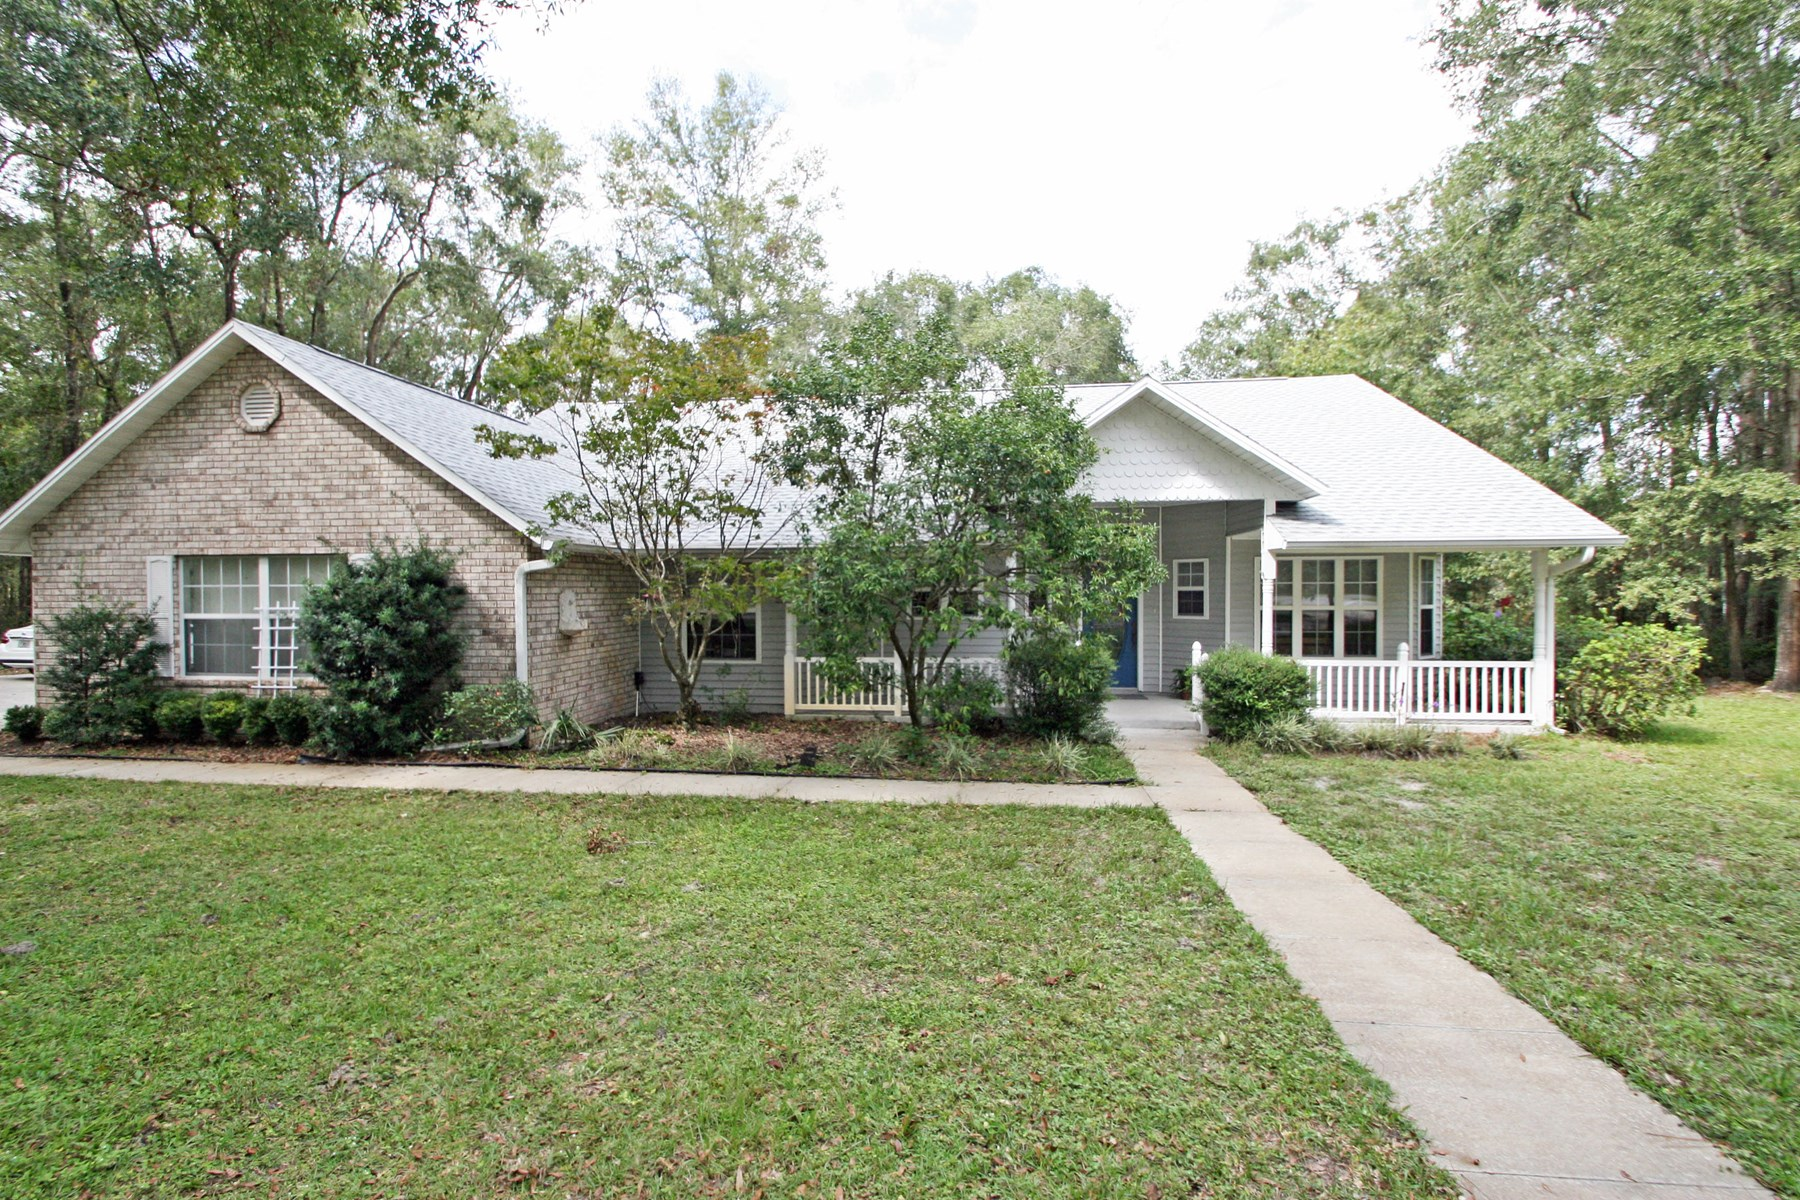 3BR/2BA HOME FOR SALE IN LAKE CITY, FLORIDA